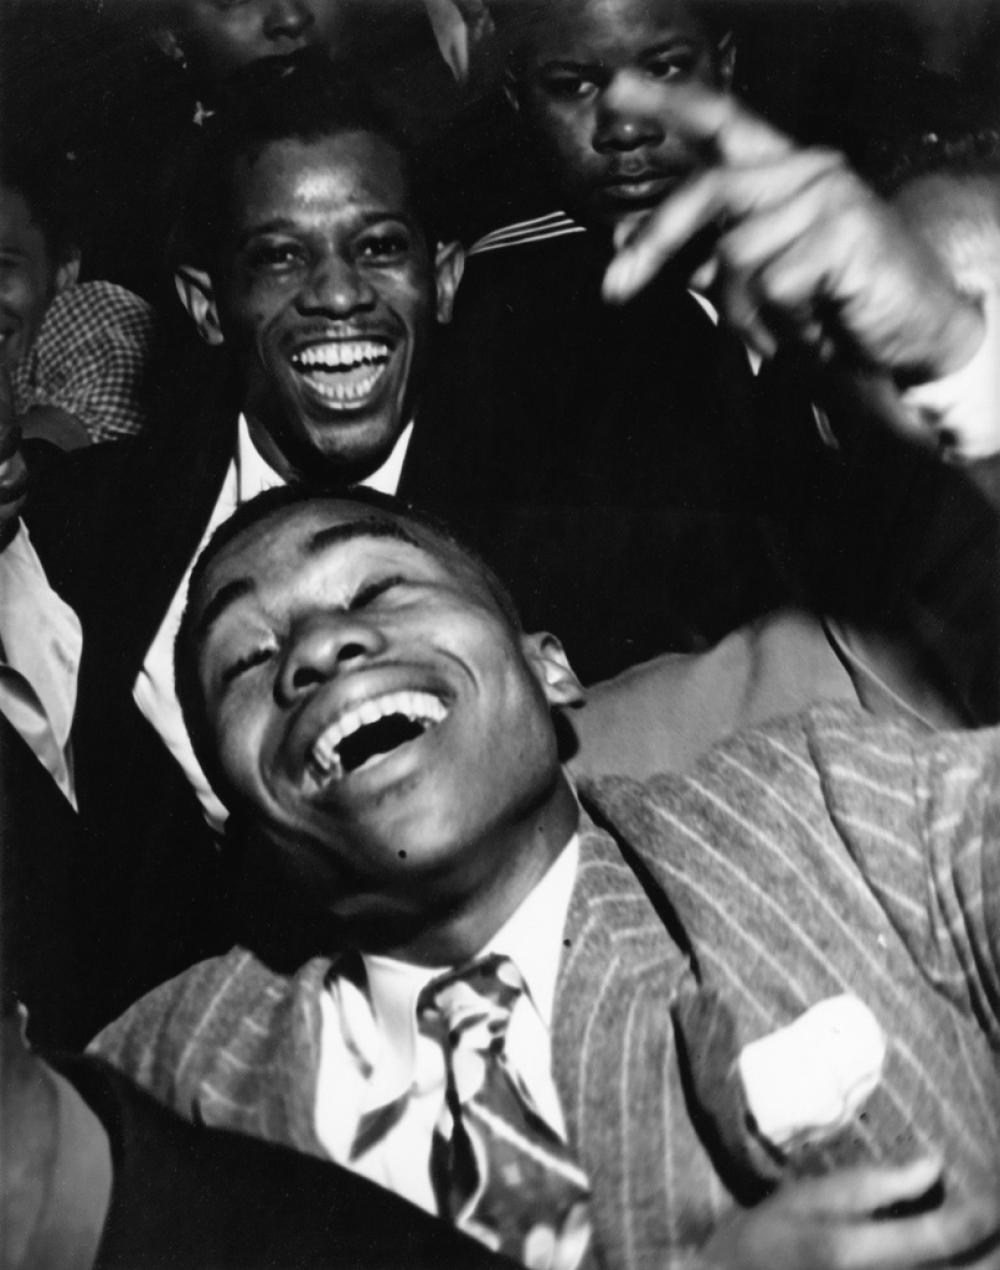 WEEGEE [ARTHUR FELLIG] (1899-1968) African American men in a club.